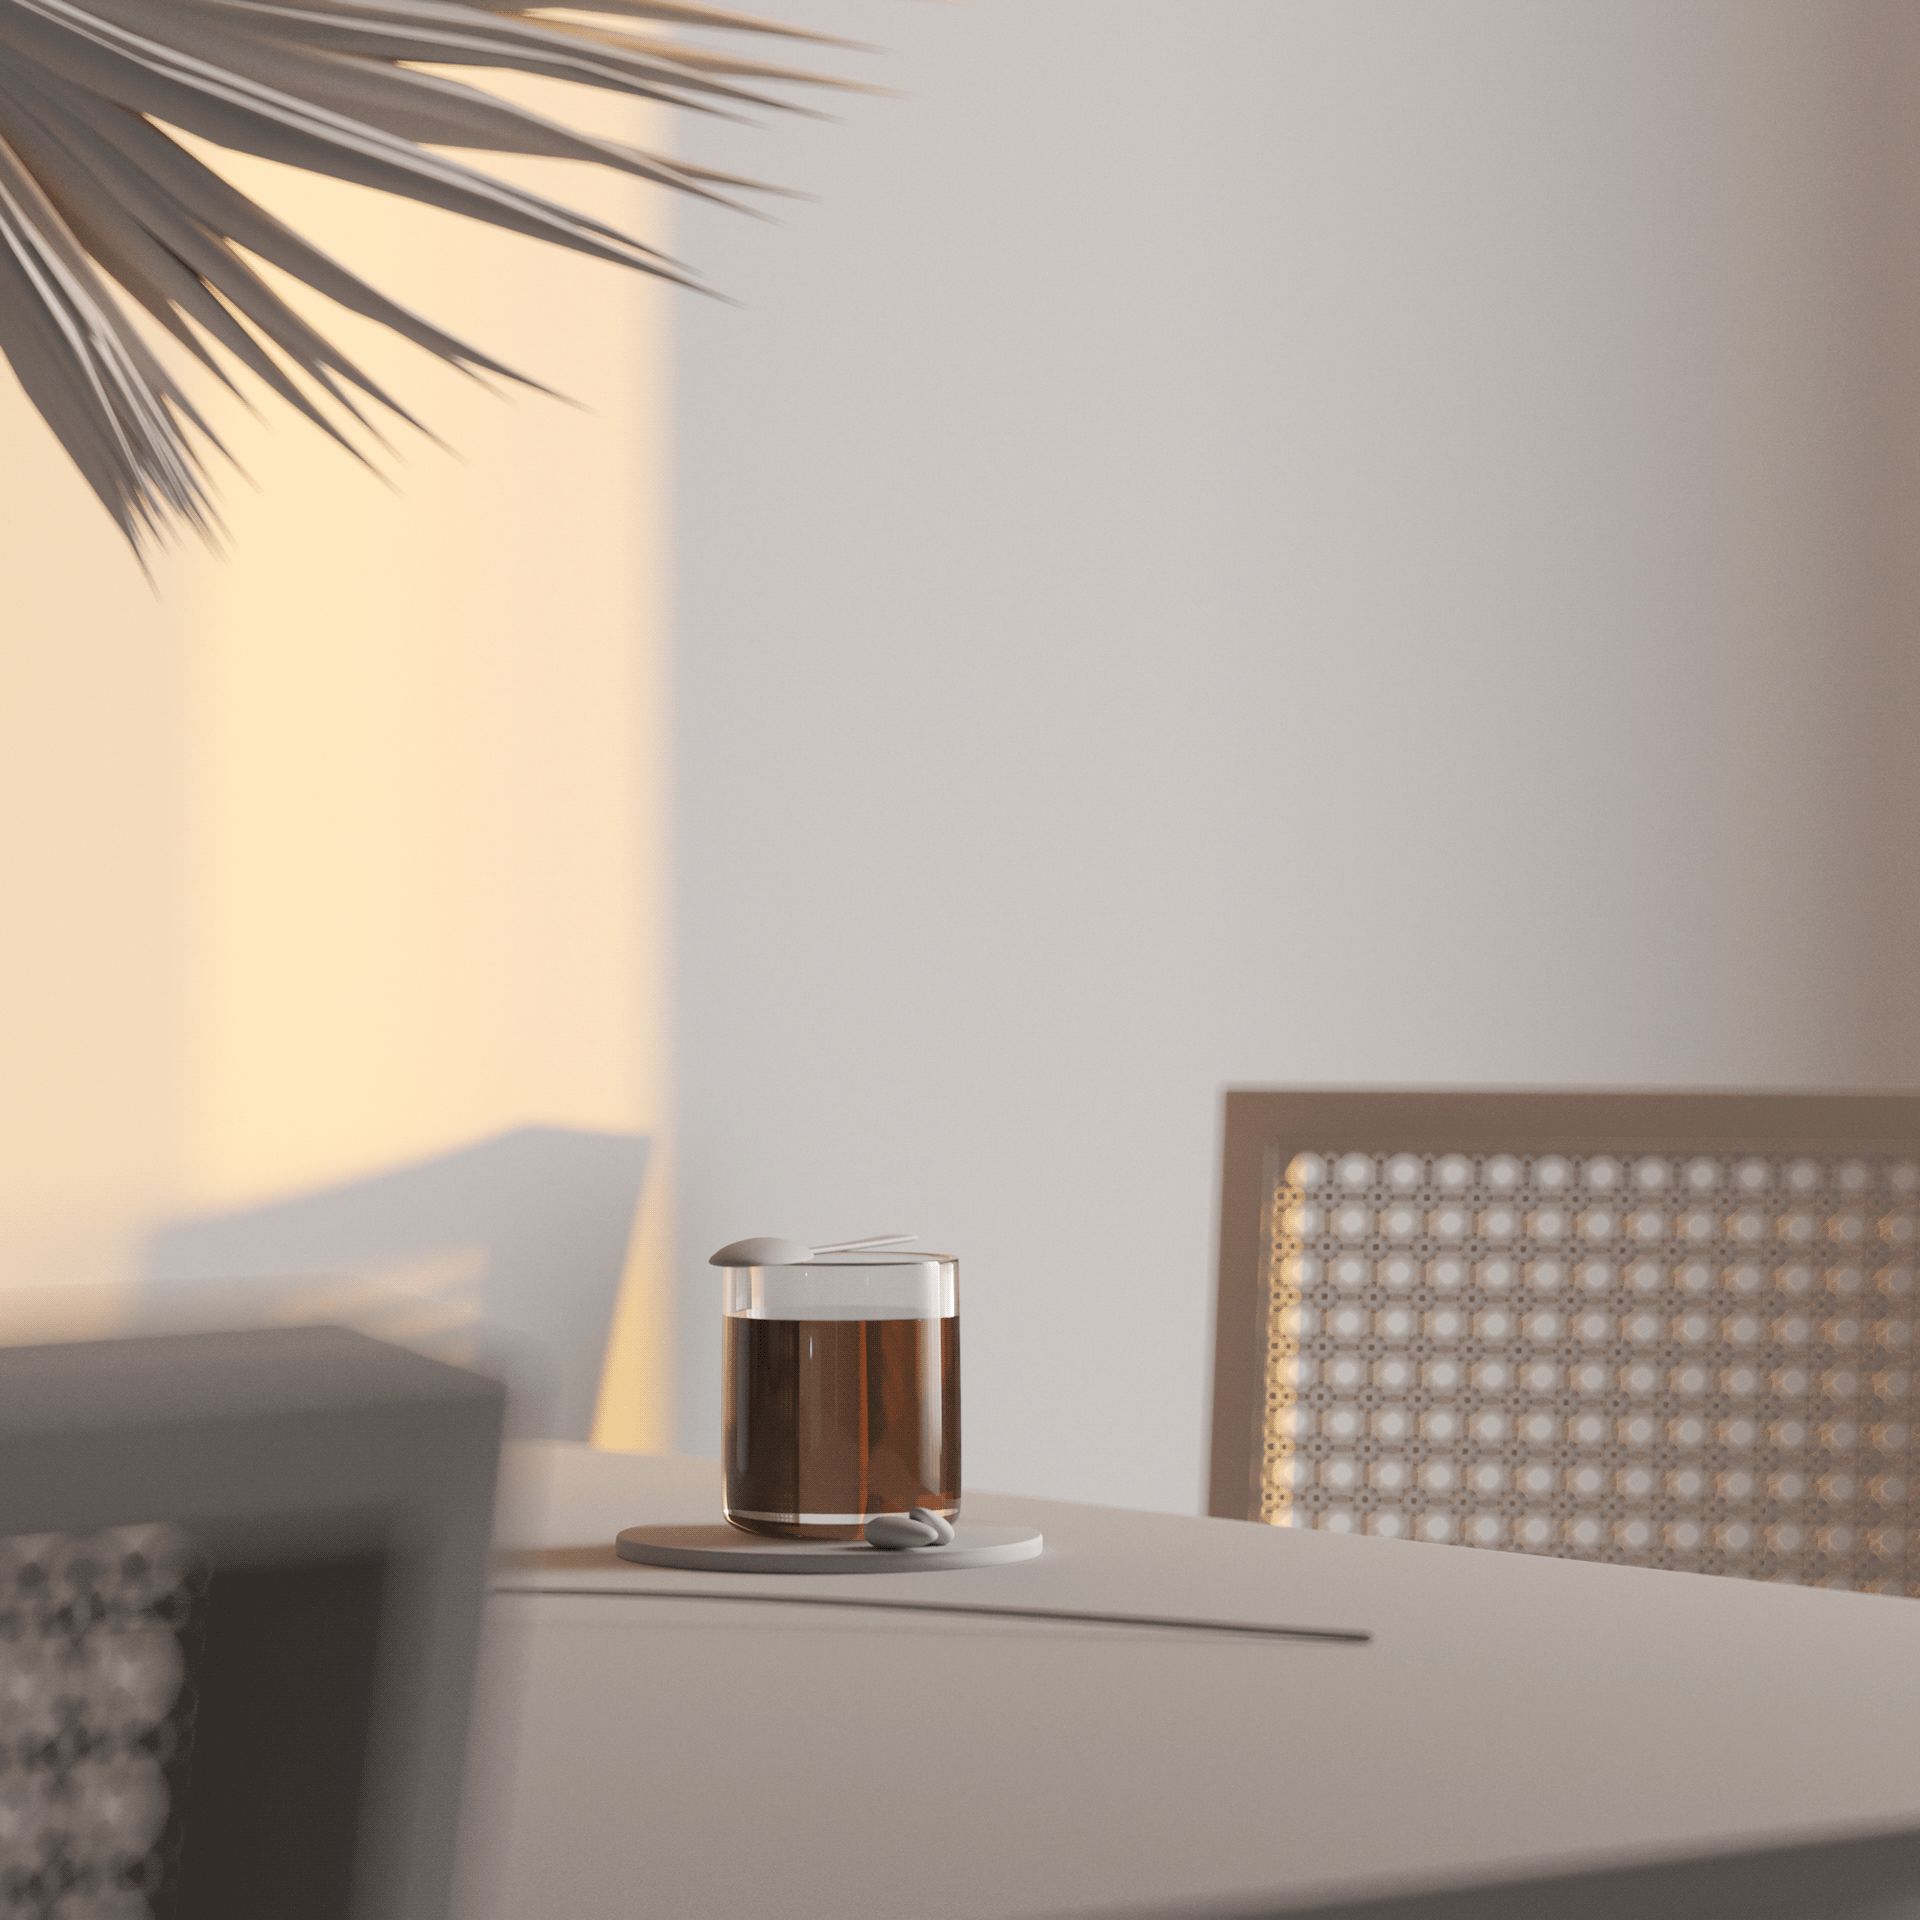 Sunset shoot wood table tea shadow - cgi visualization